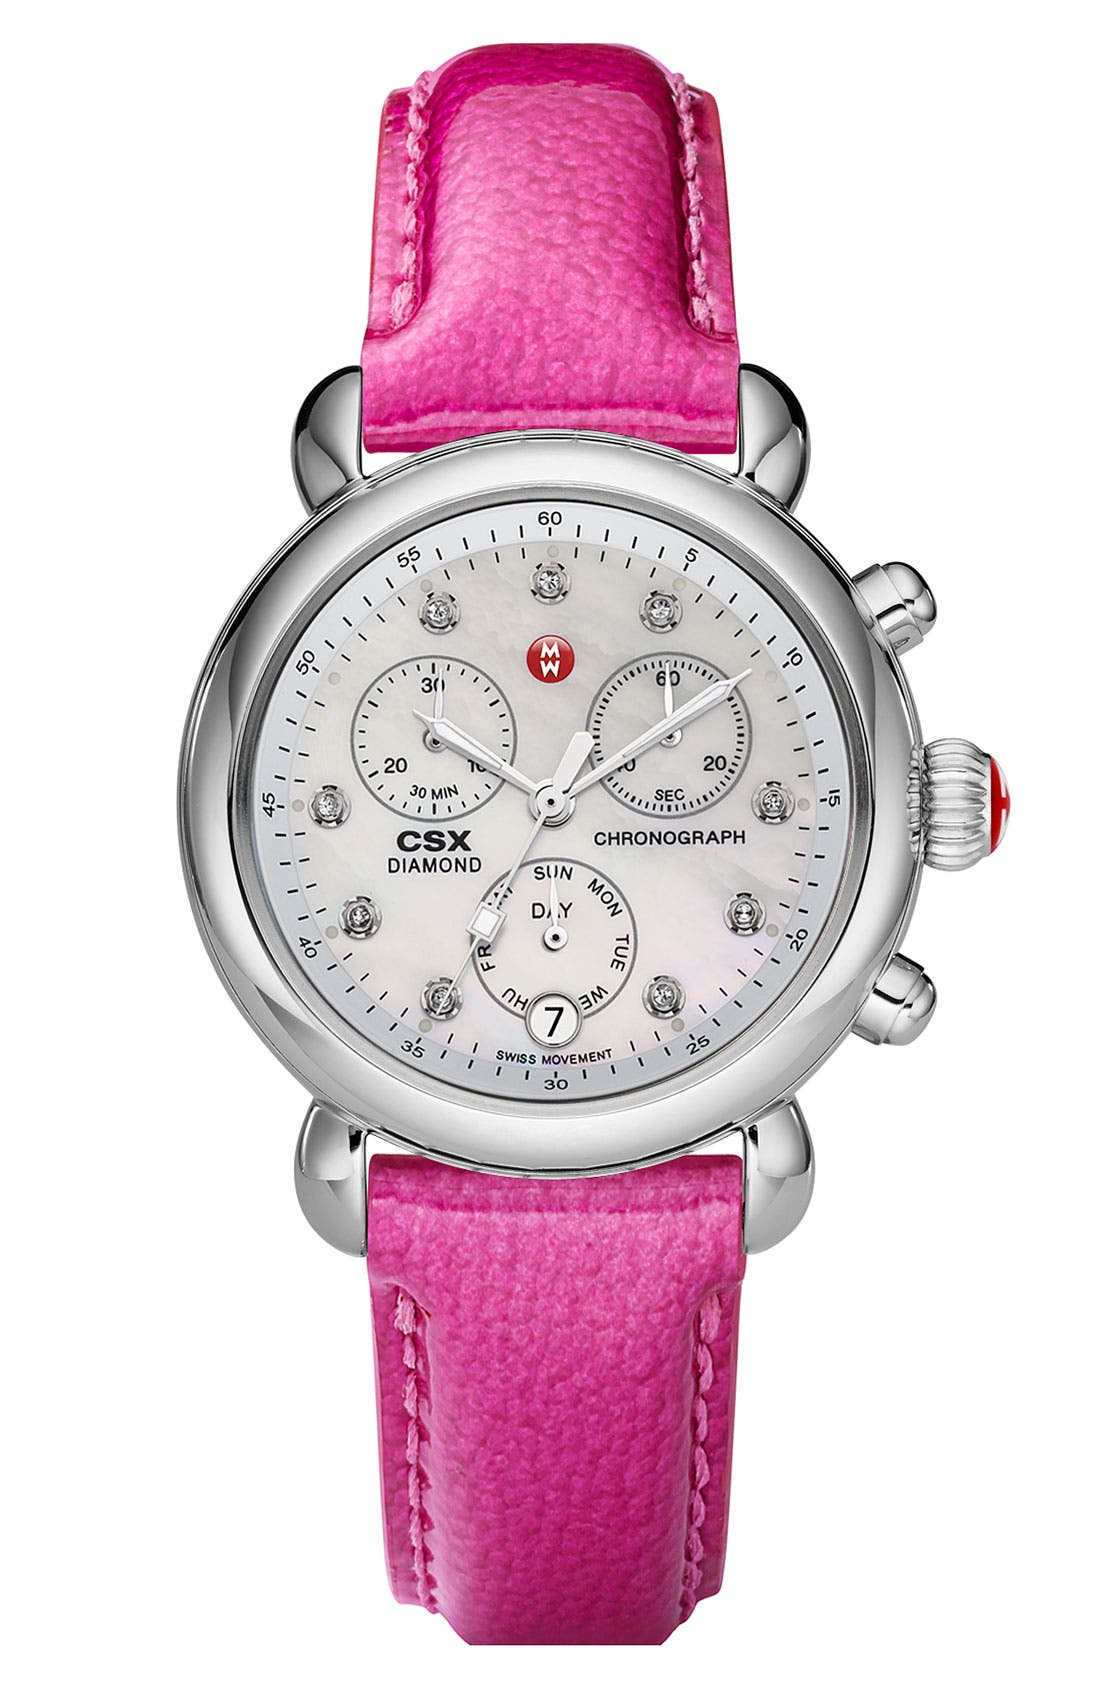 Alternate Image 1 Selected - MICHELE 'CSX-36' Diamond Dial Watch Case & 18mm Pink Patent Leather Strap